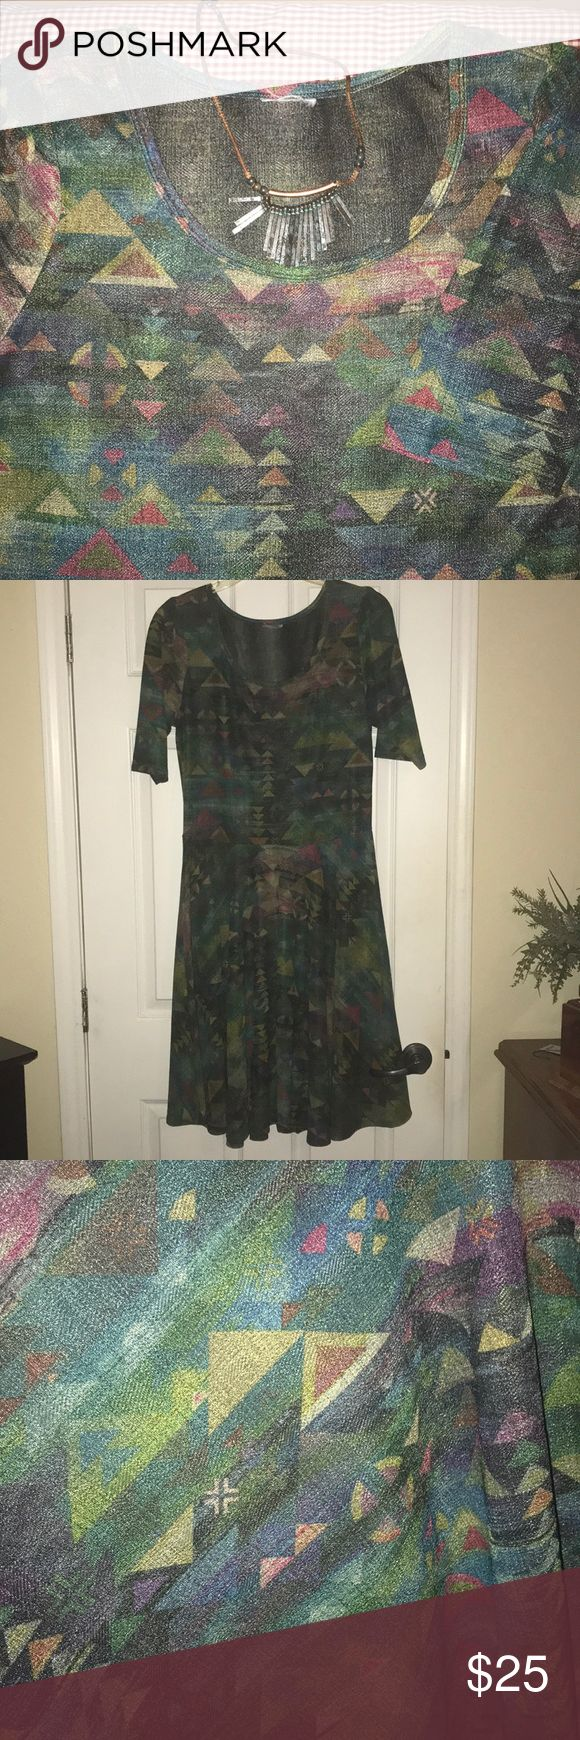 Lularoe Nicole Dress The Nicole has a fitted bodice, a scoop neck dress that gives shape and style that naturally flatters all body types. Combining the fitted bodice with the flowy full circle skirt means that the Nicole has the perfect blend to dress up or dress down.It can be worn for any occasion.  This is a great abstract design. I cut the neck tag out because I like to wear the Nicole backwards! Try it for a higher neckline. It's fab! LuLaRoe Dresses